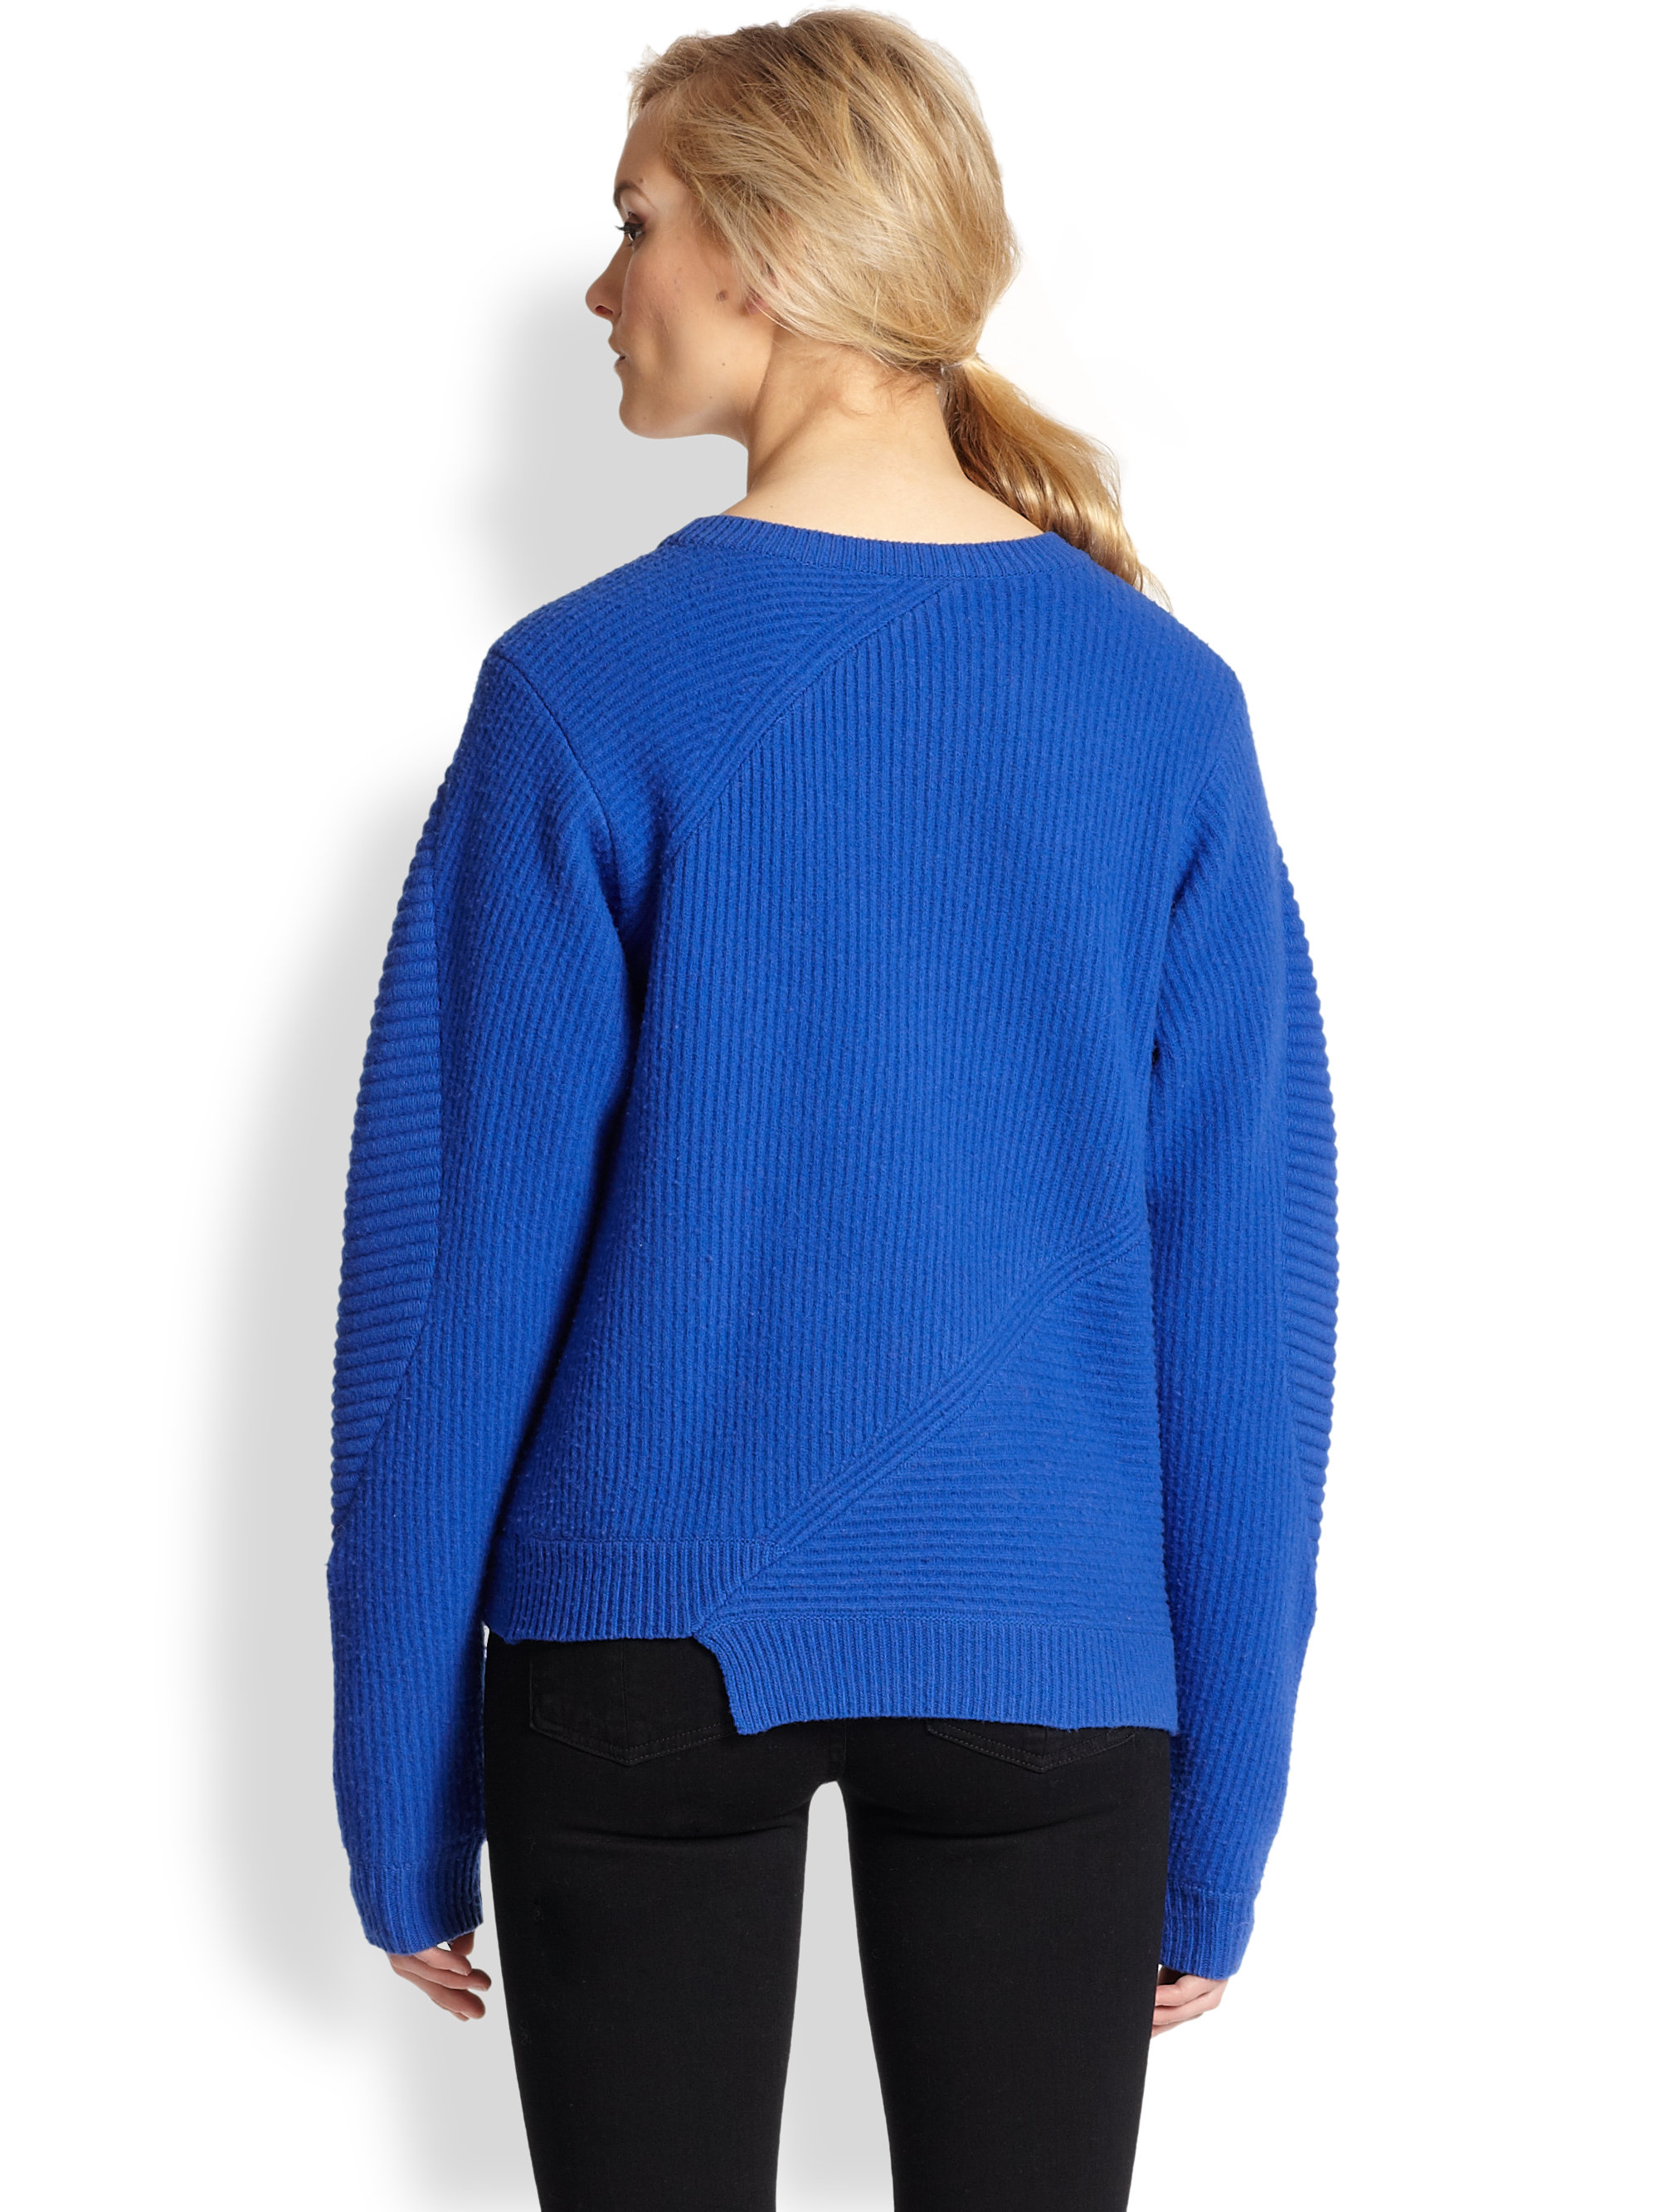 Opening ceremony Asymmetrical Zip Ribbed Wool Sweater in Blue | Lyst